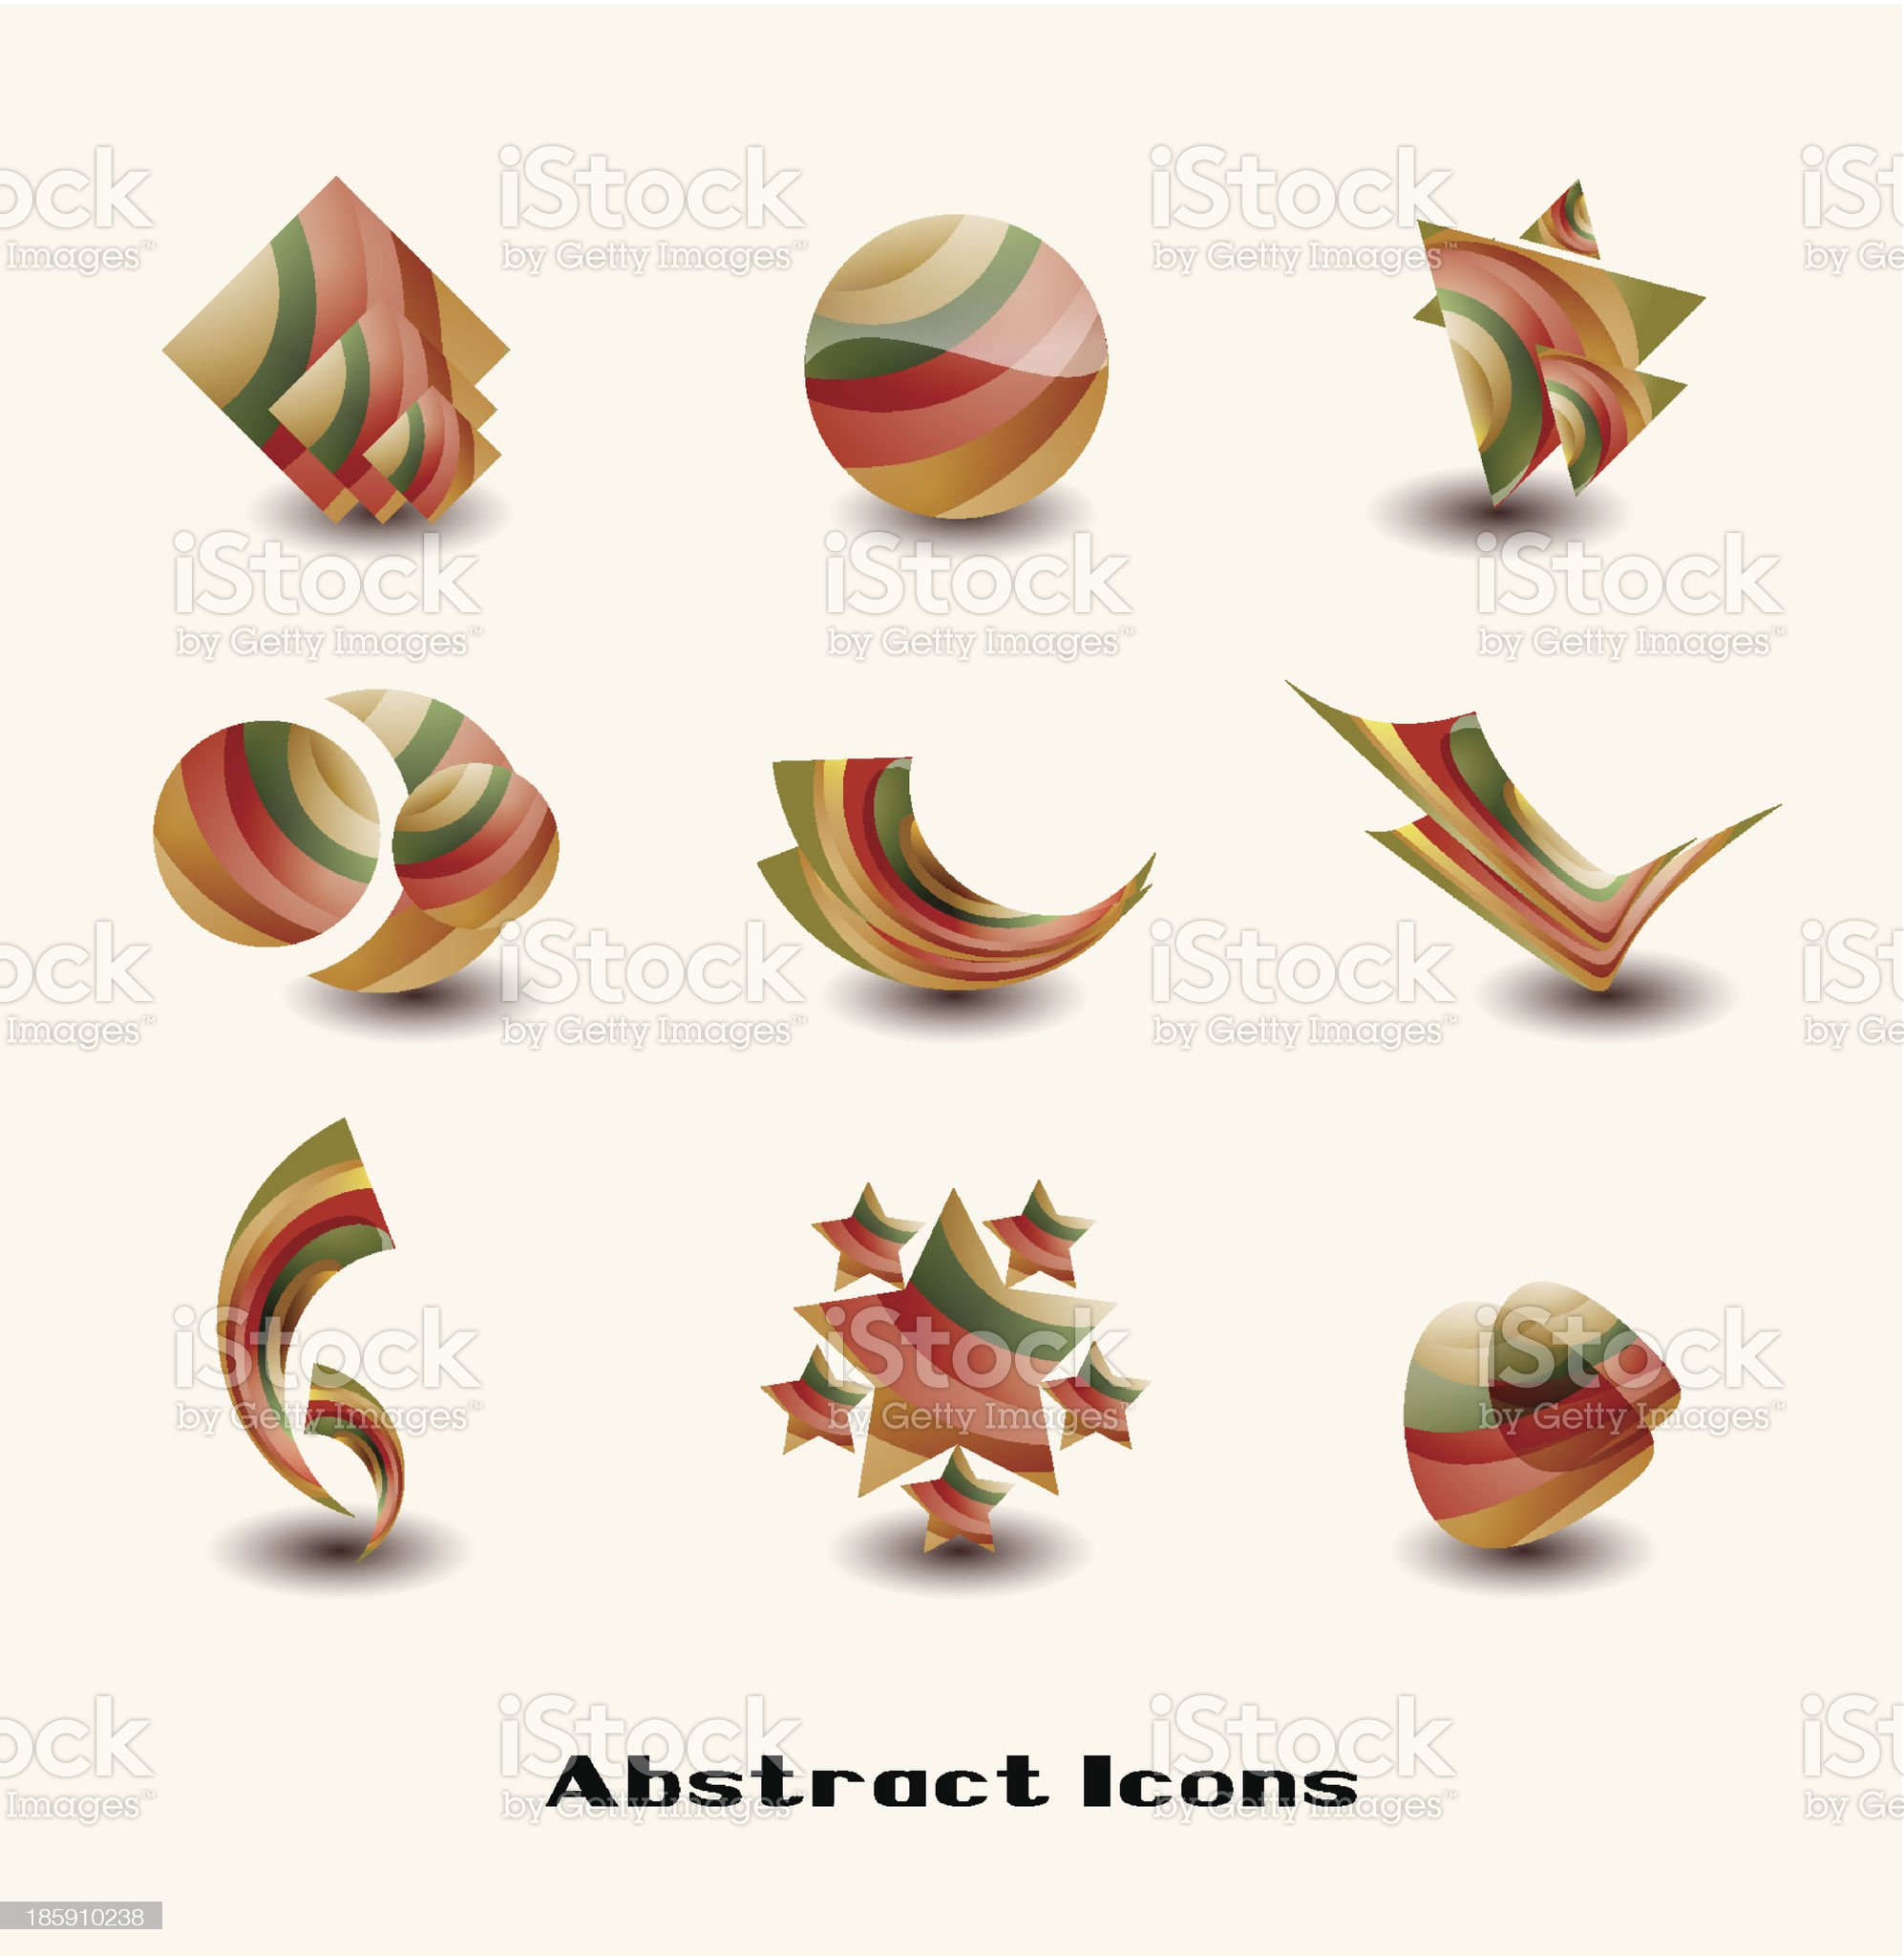 Design elements set royalty-free stock vector art